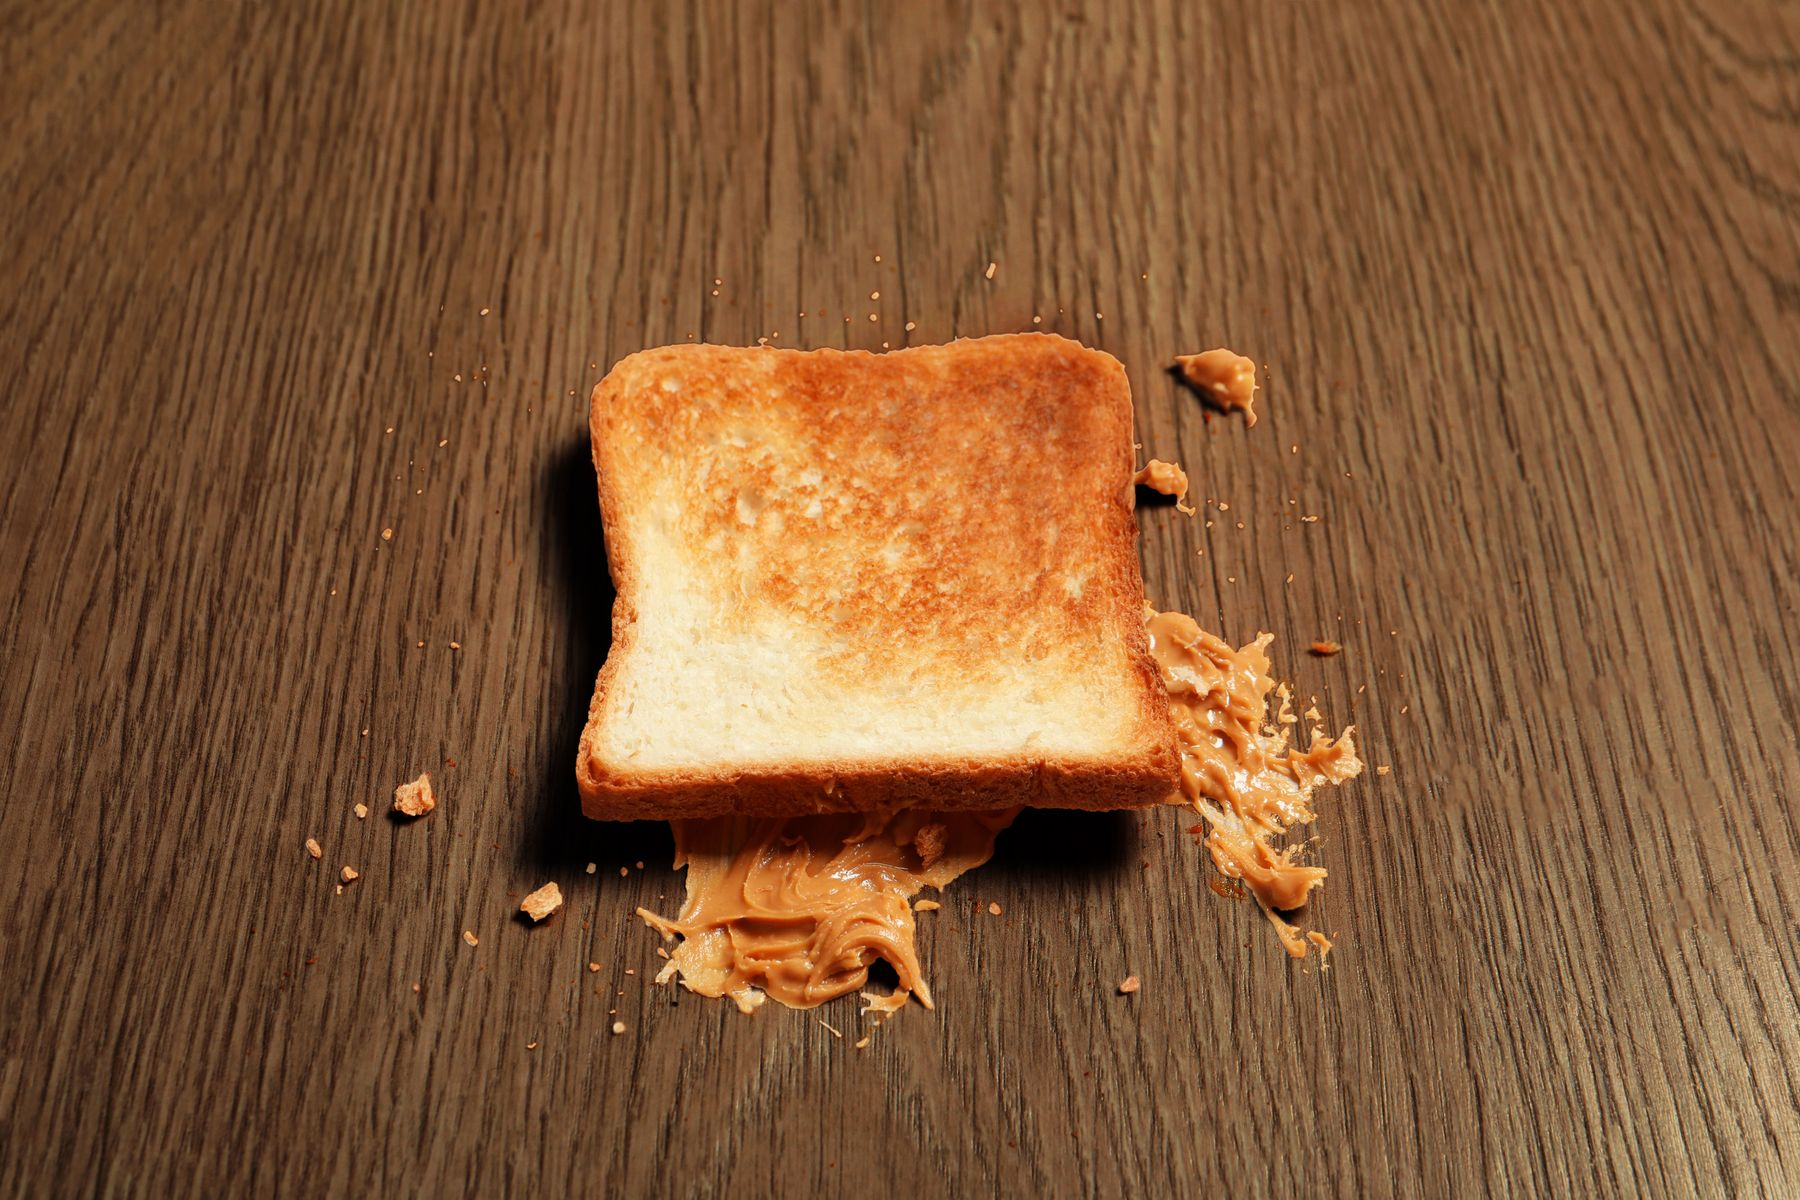 A slice of peanut butter toast on wooden floor